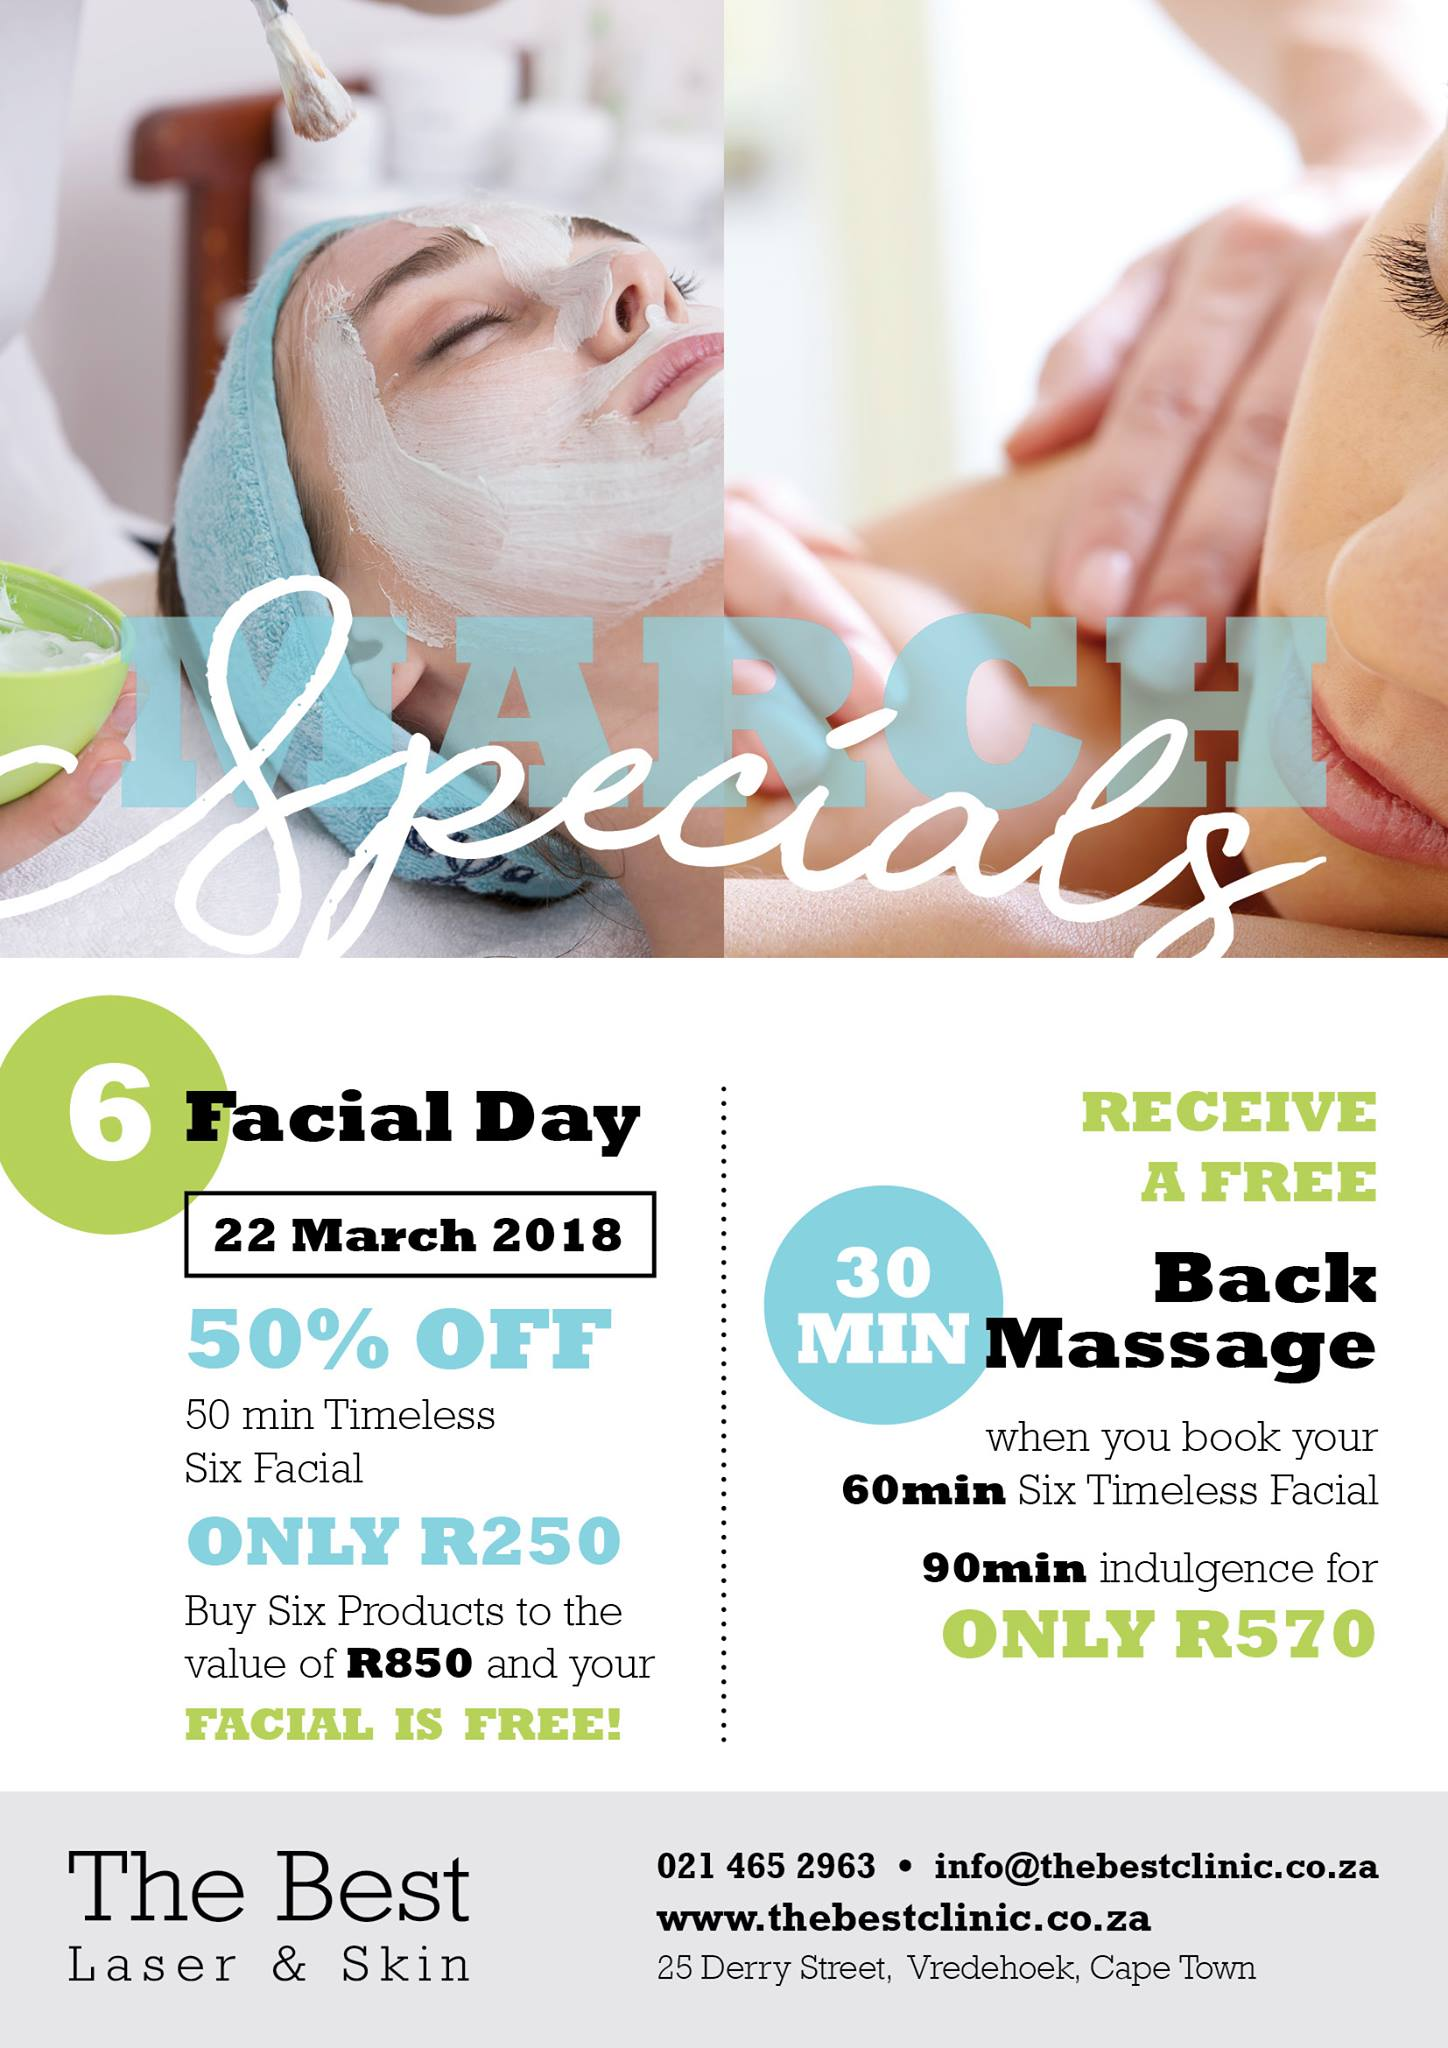 Book 60min Six Timeless Facial and Receive Free 30min Back Massage R570